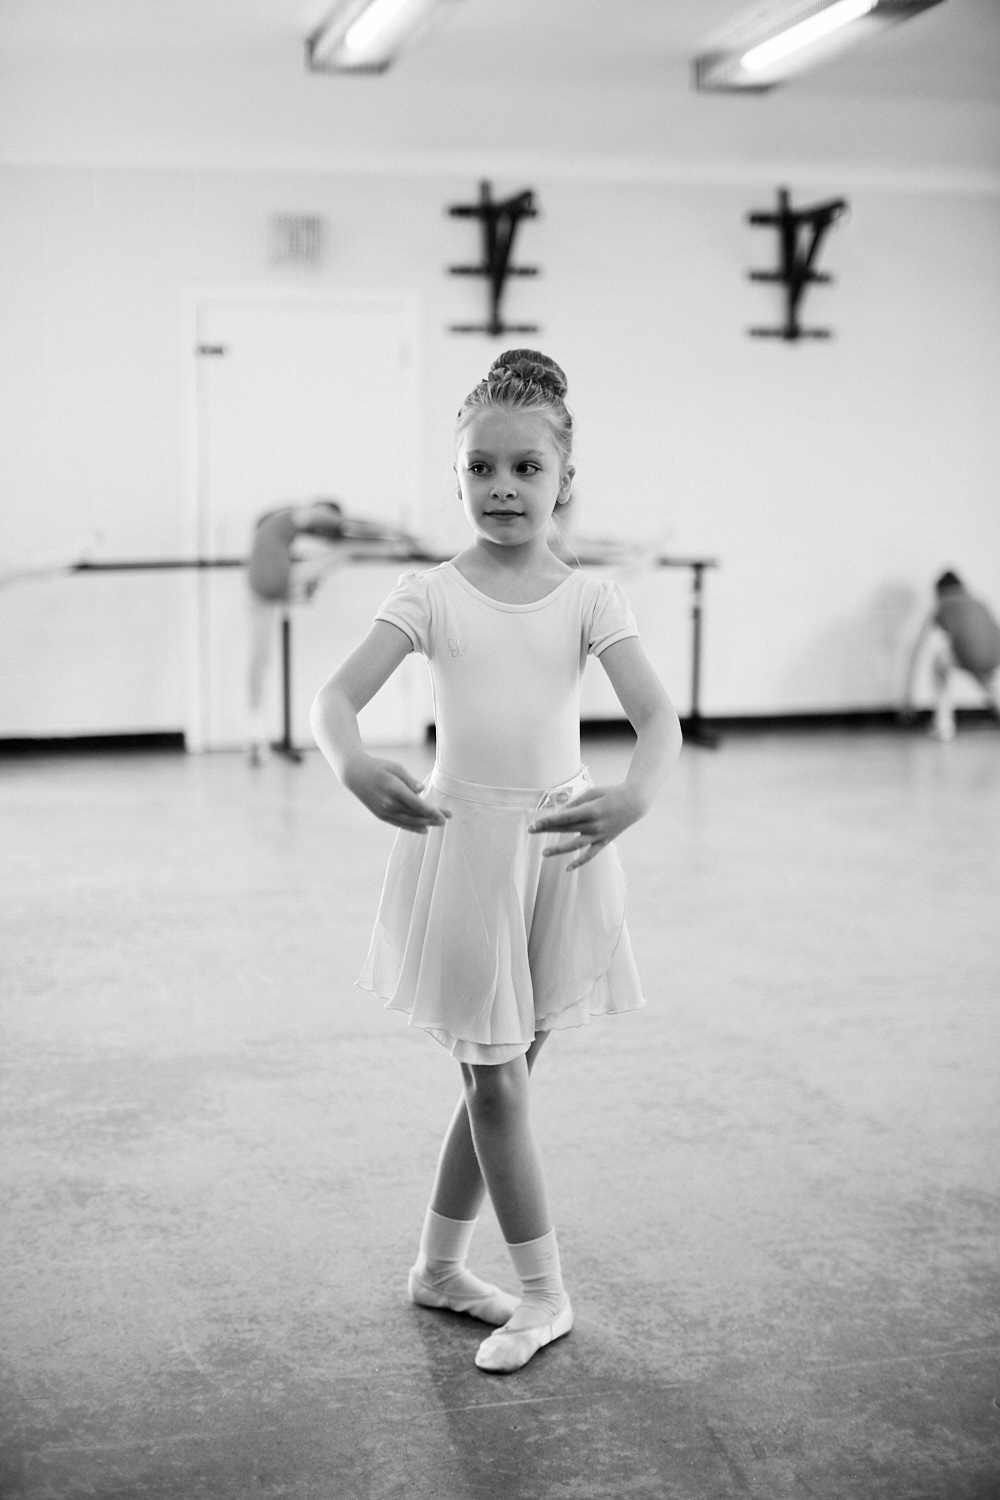 A young ballet dancer posing for the photo in black and white